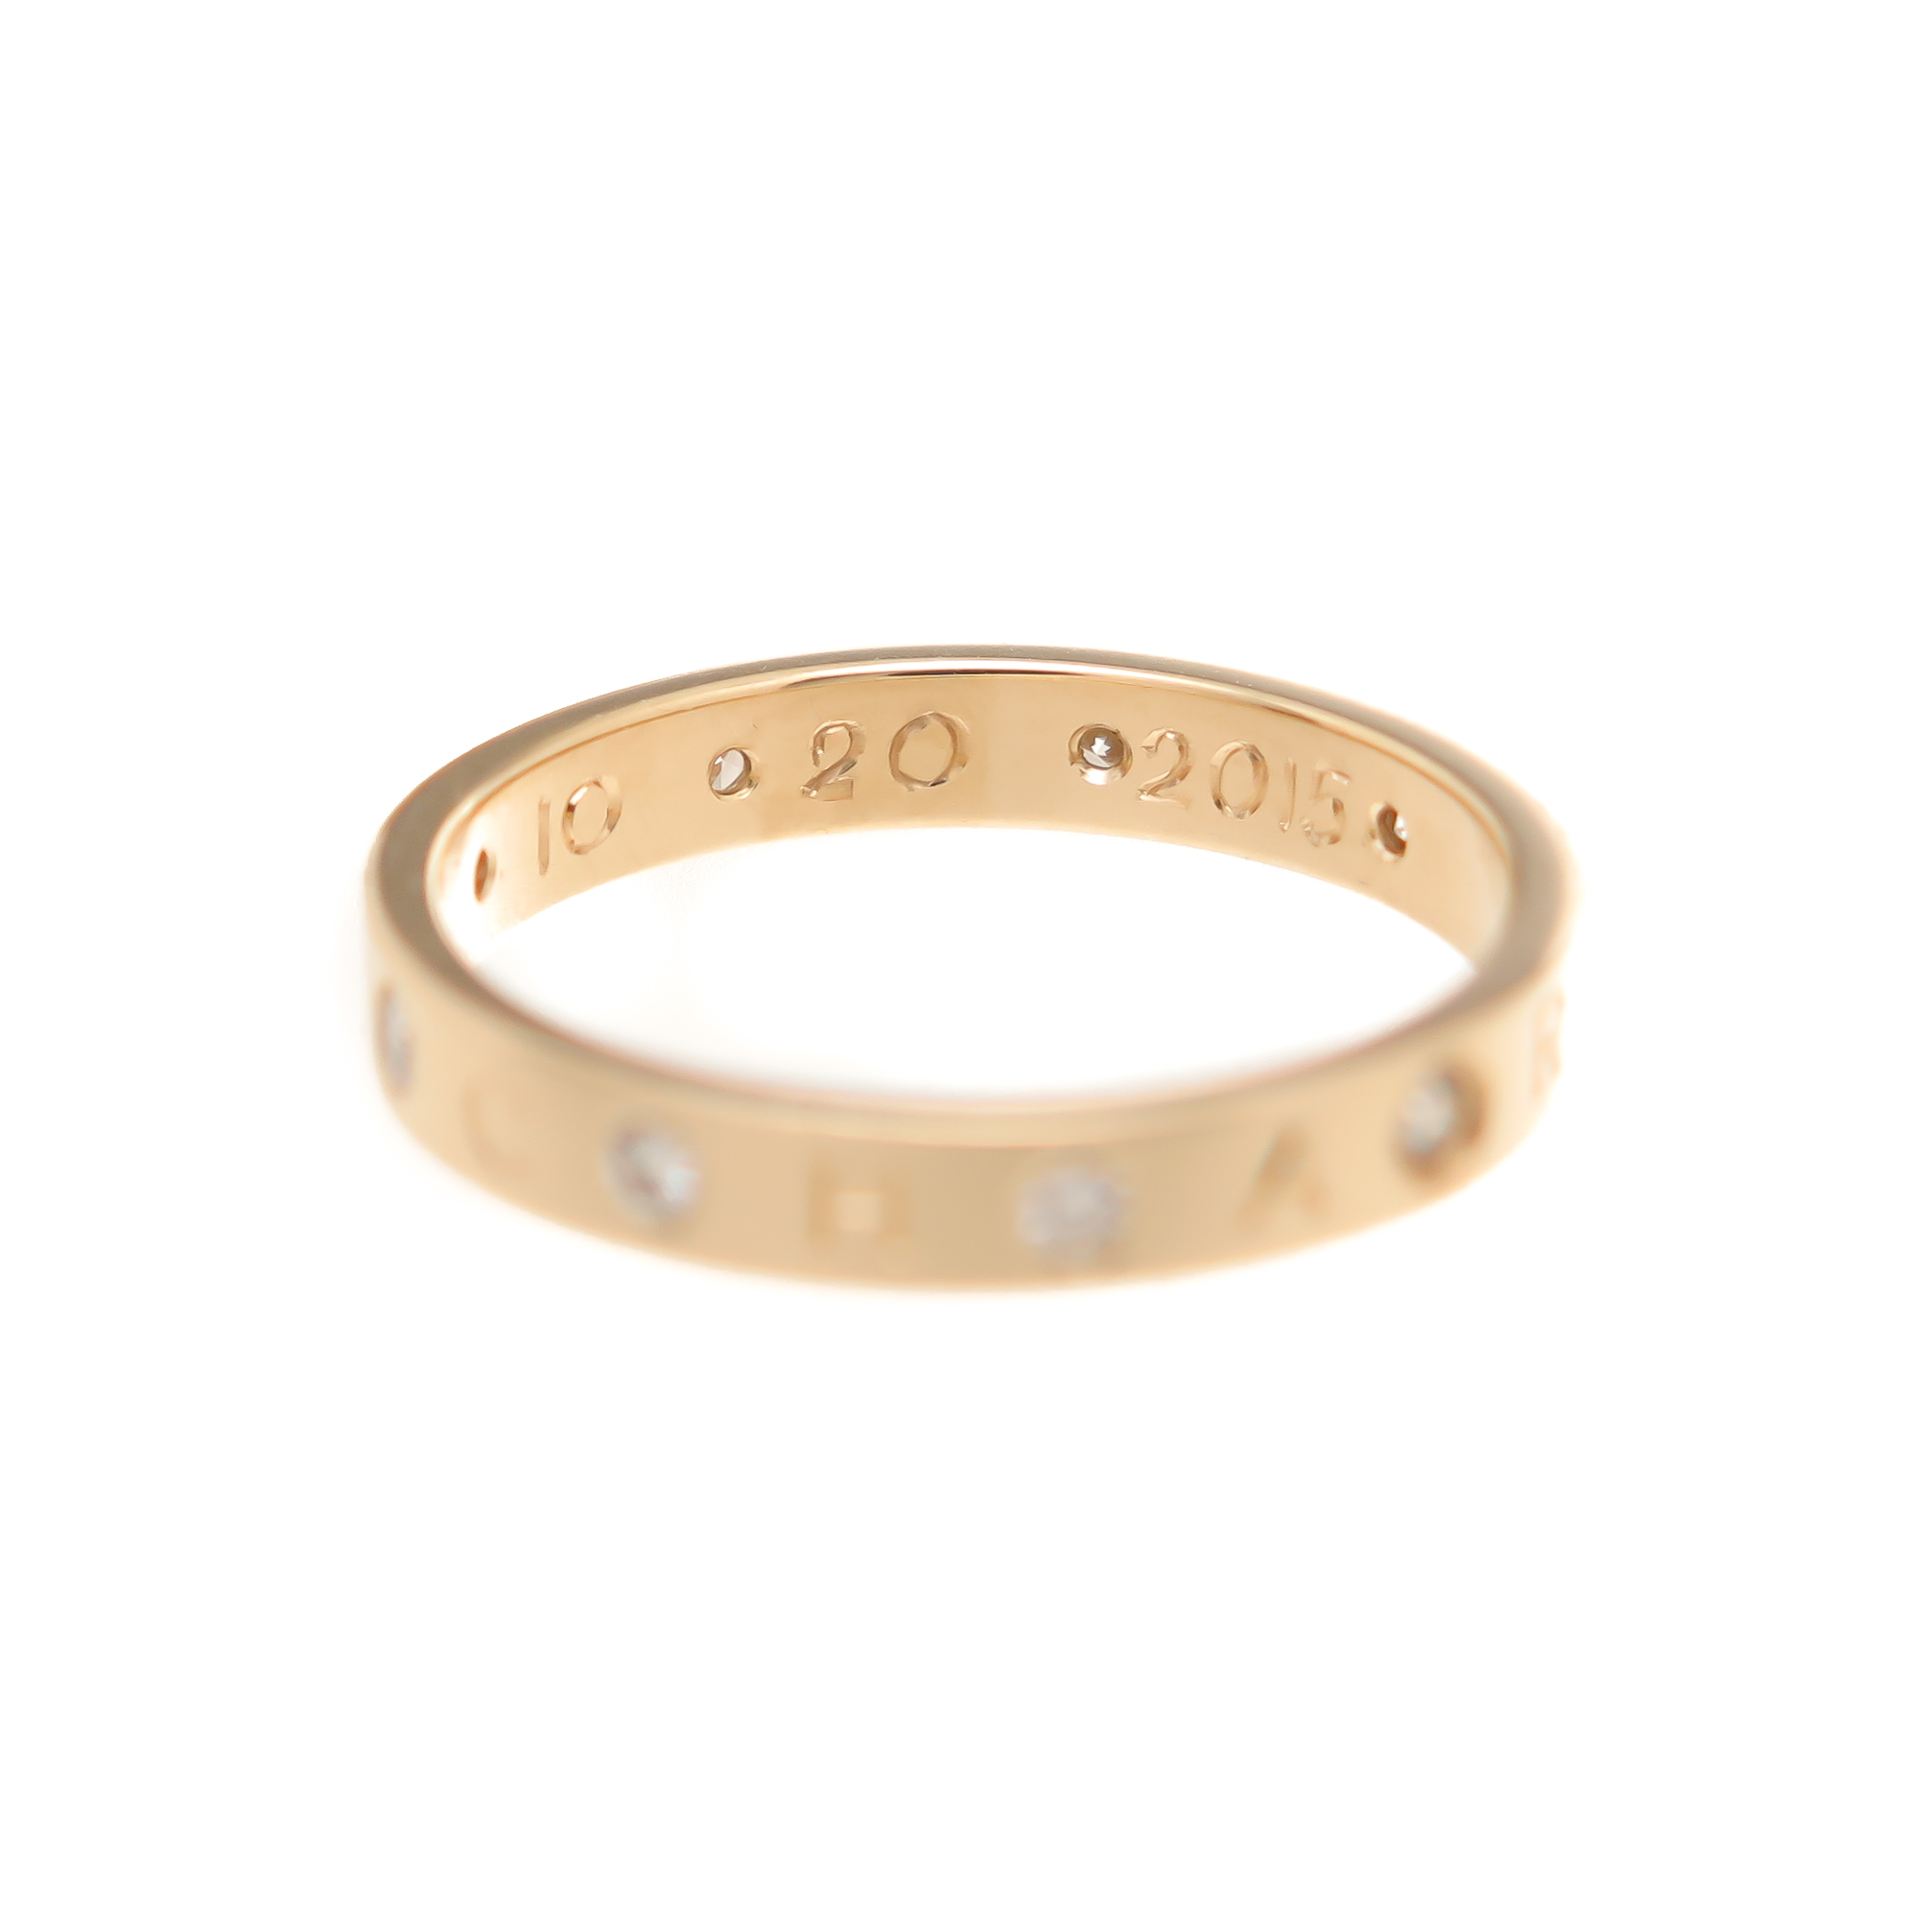 14k yellow gold and diamond baby name ring by Kerry Gilligan